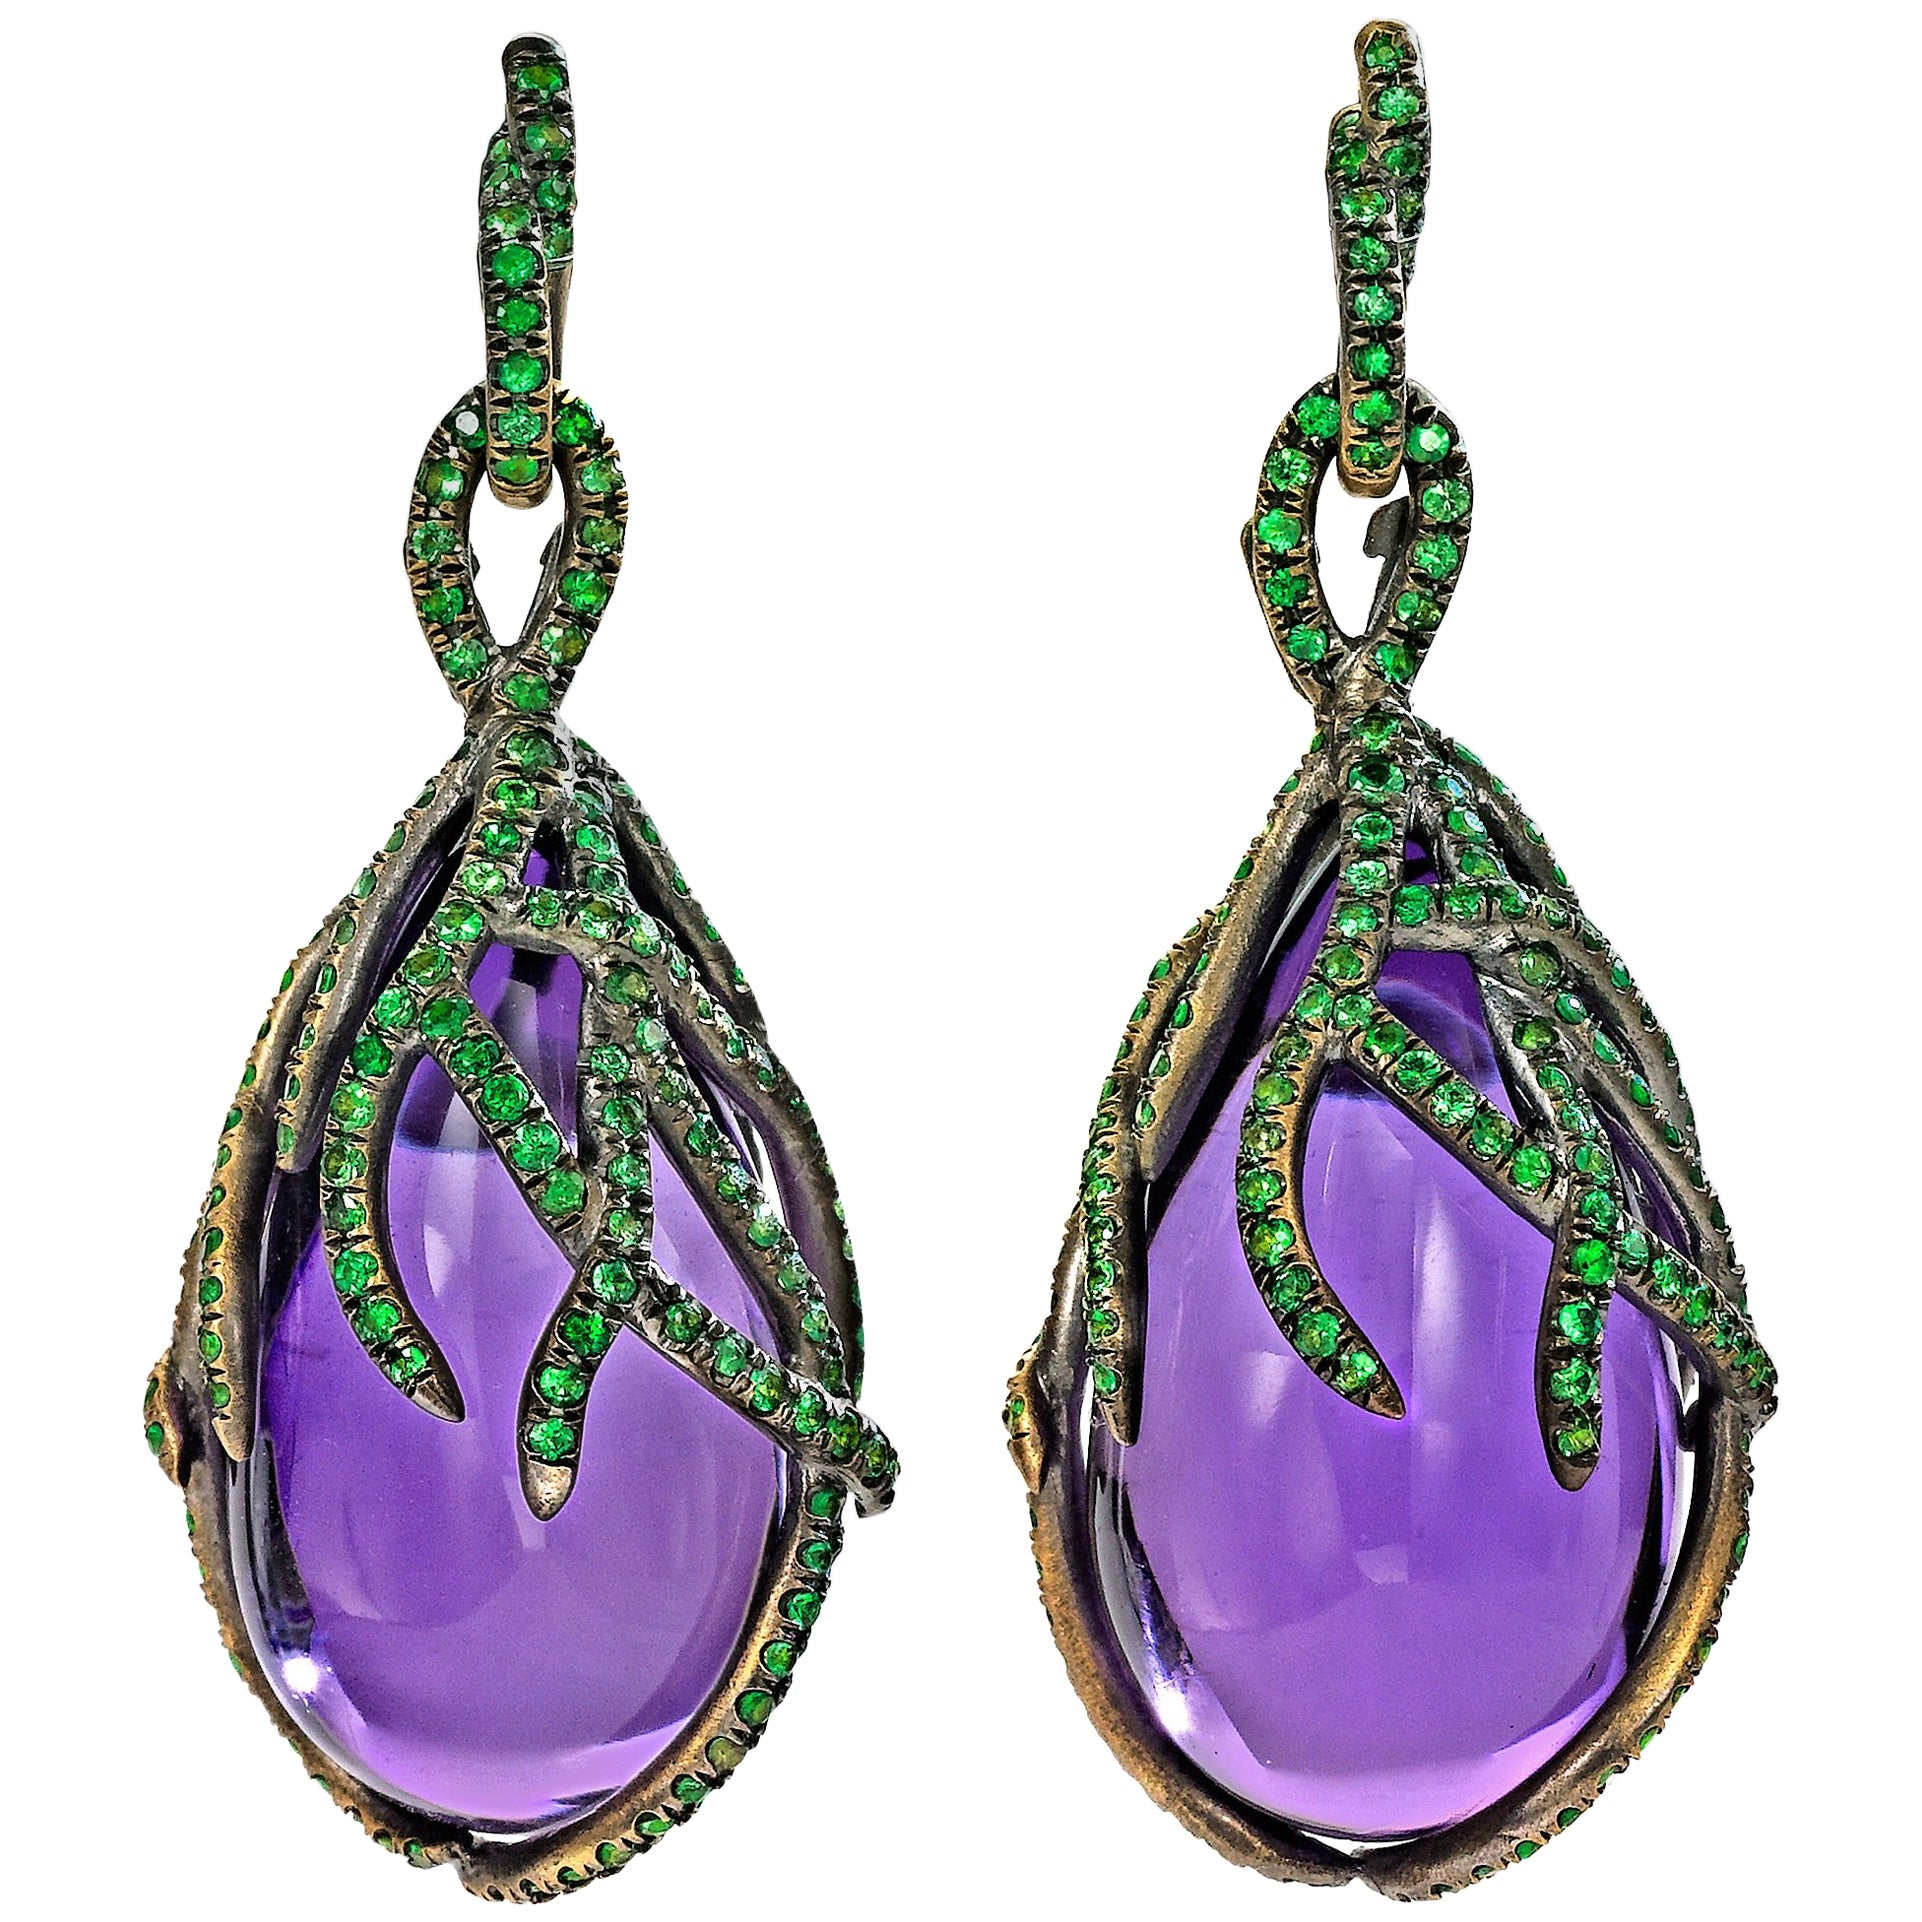 Wendy Brandes Signed Marie Antoinette Collection Earrings